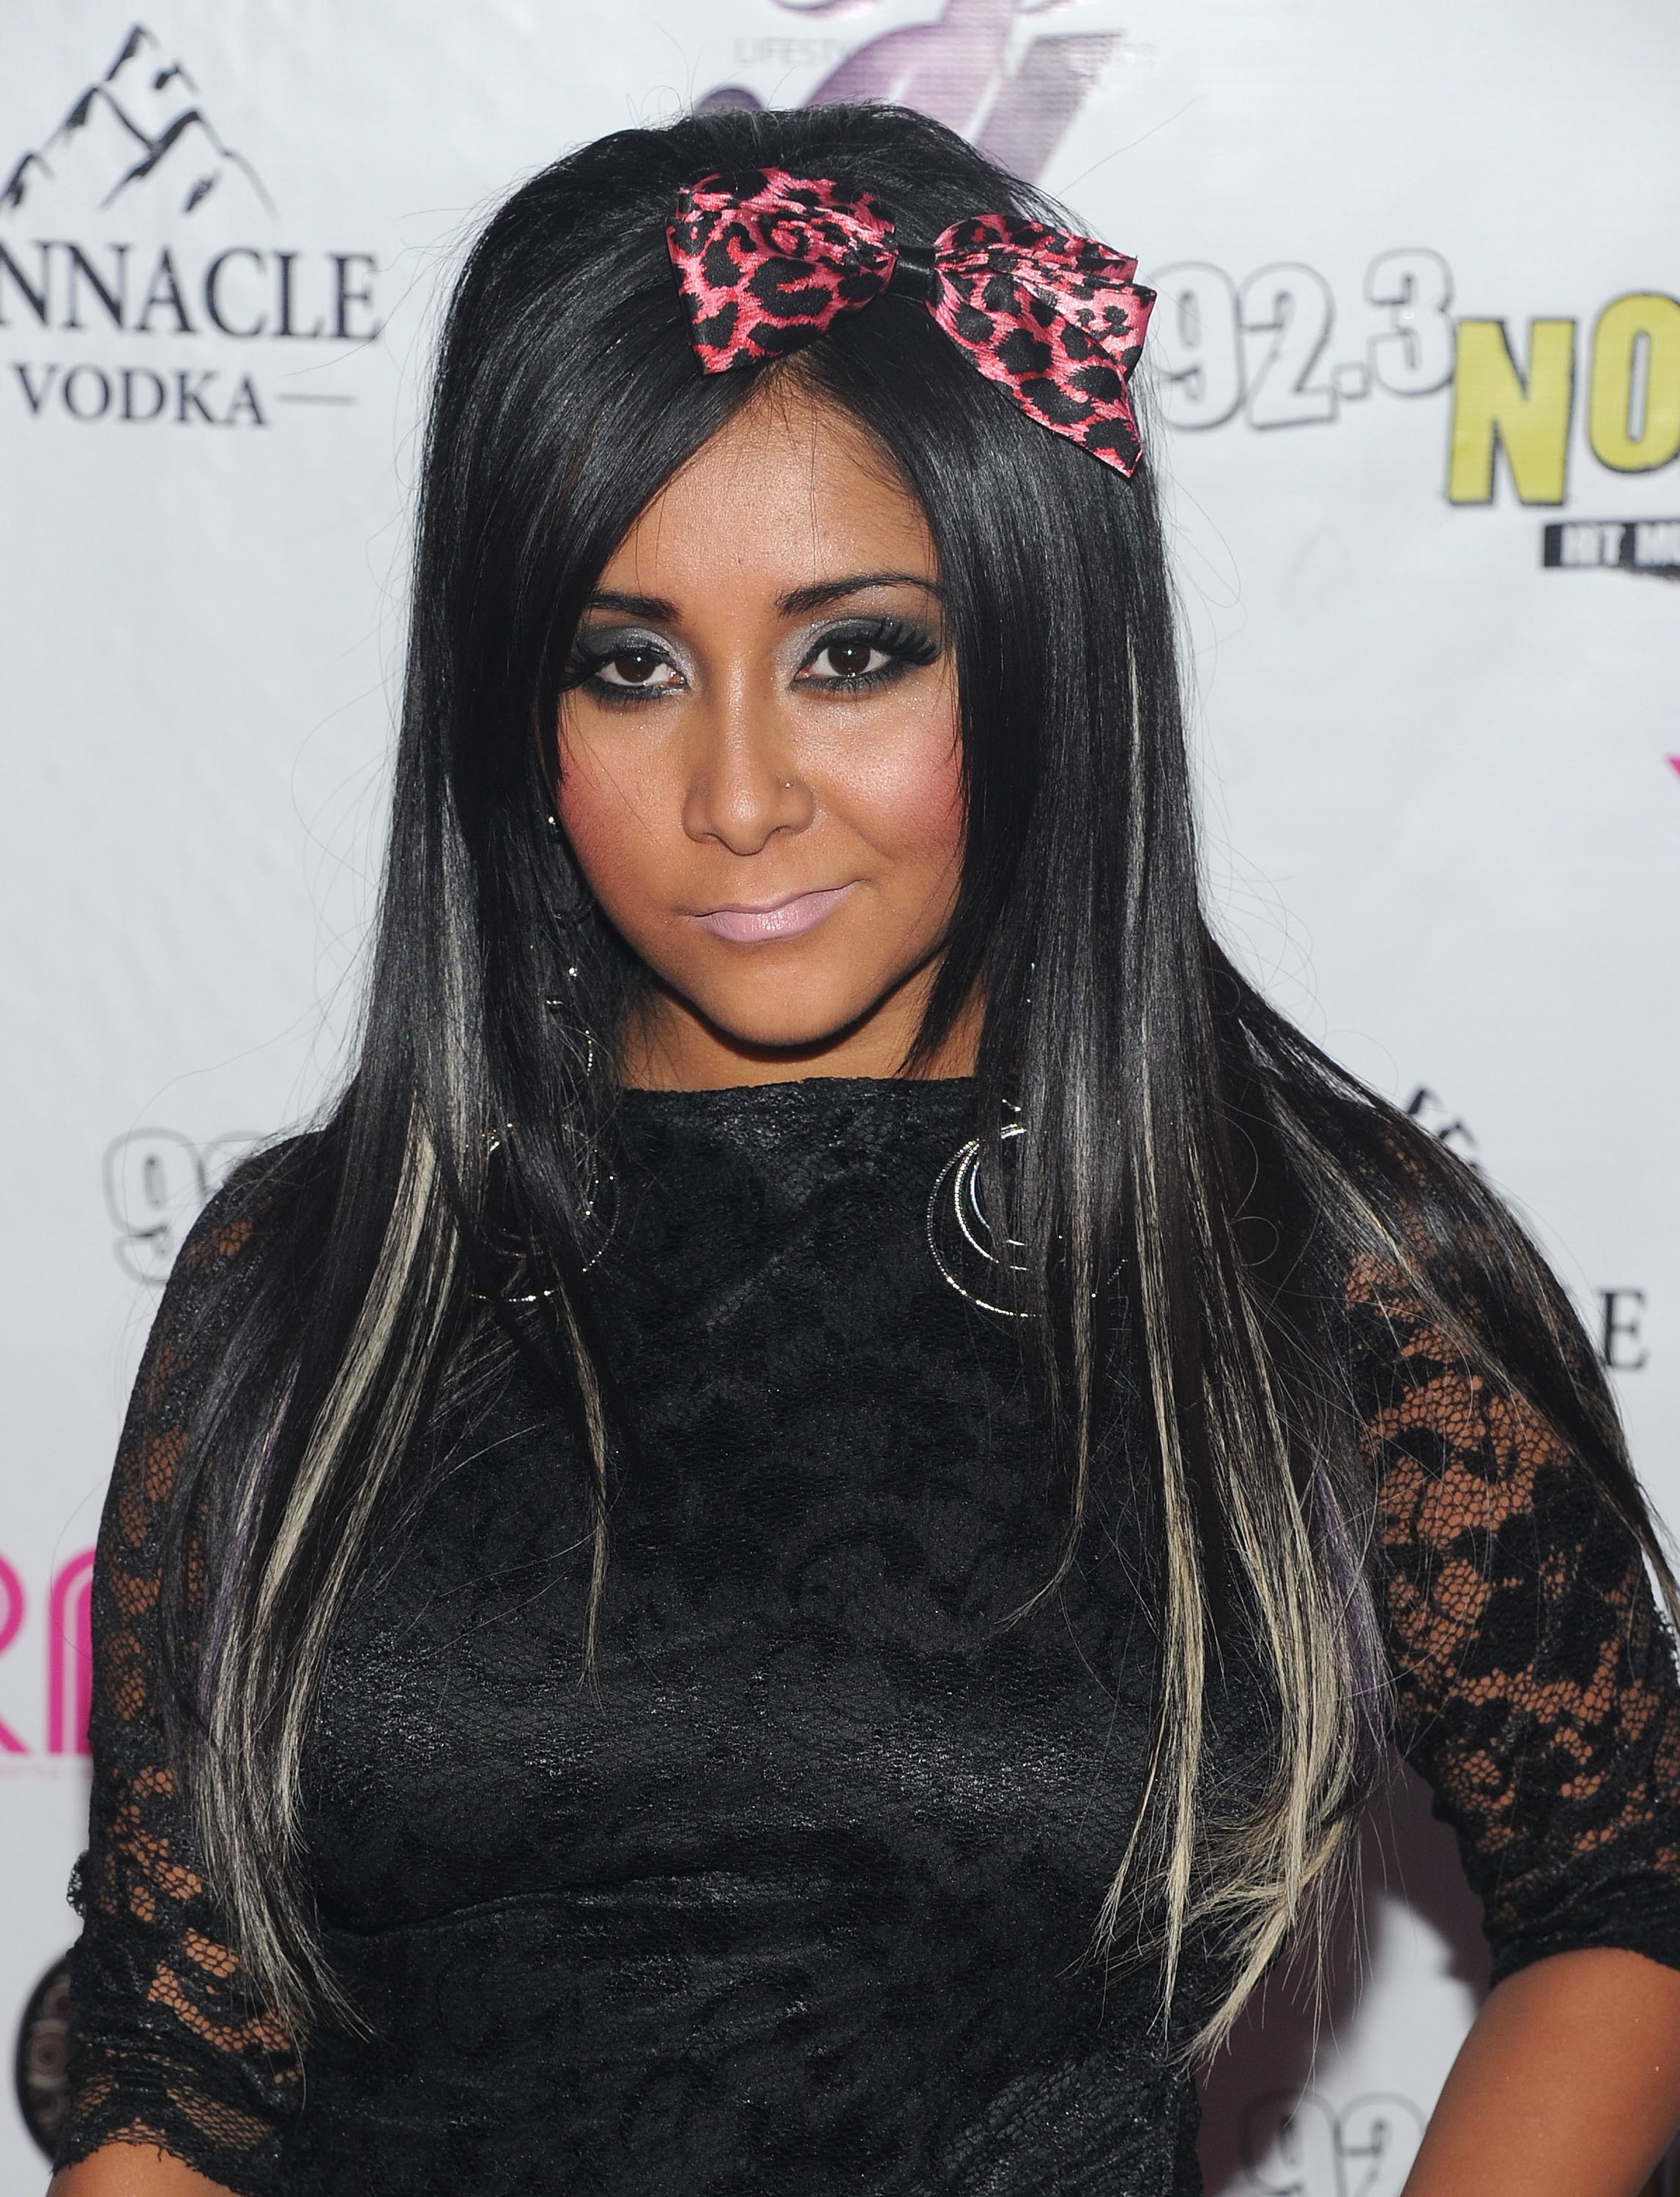 snookicropped Things We Already Know About Snookis Unborn Baby